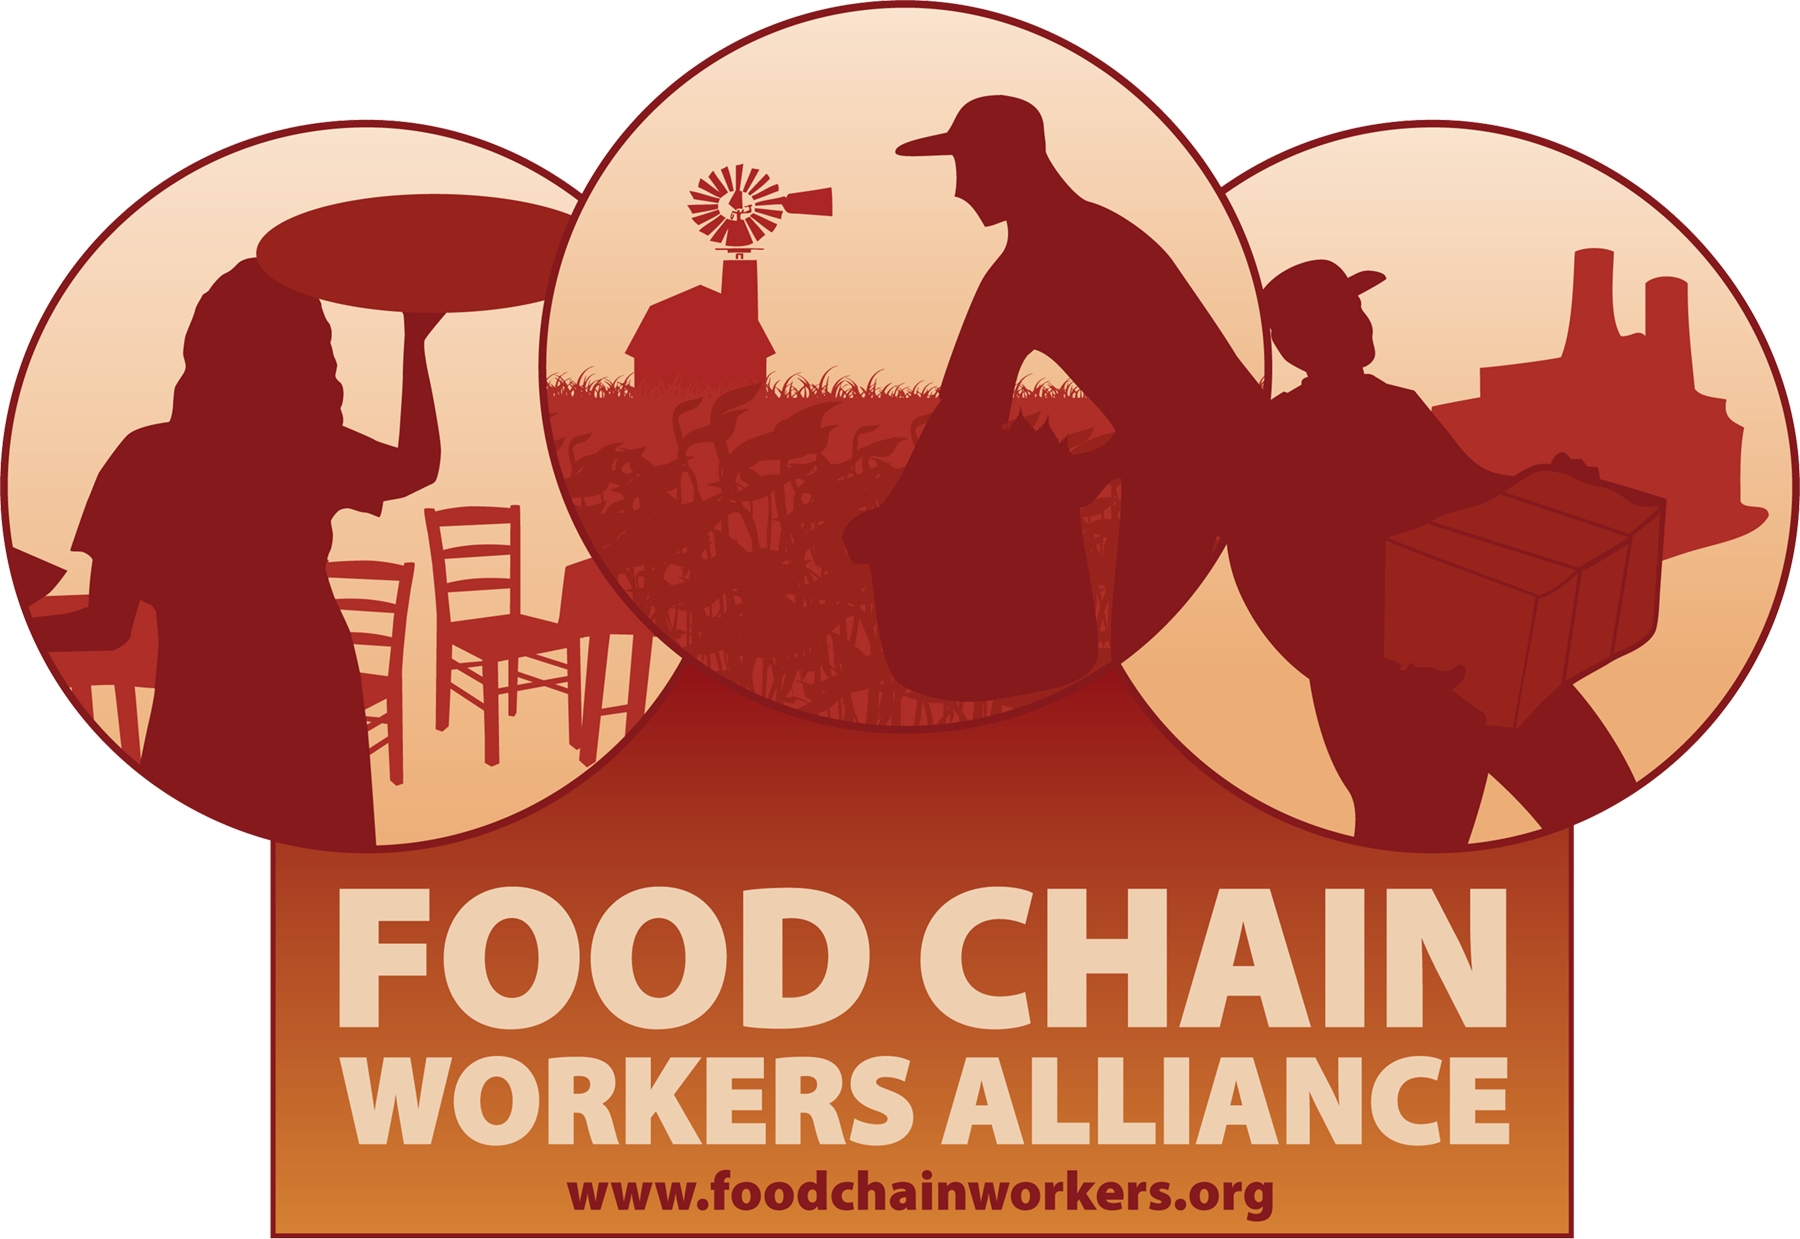 food chain workers alliance